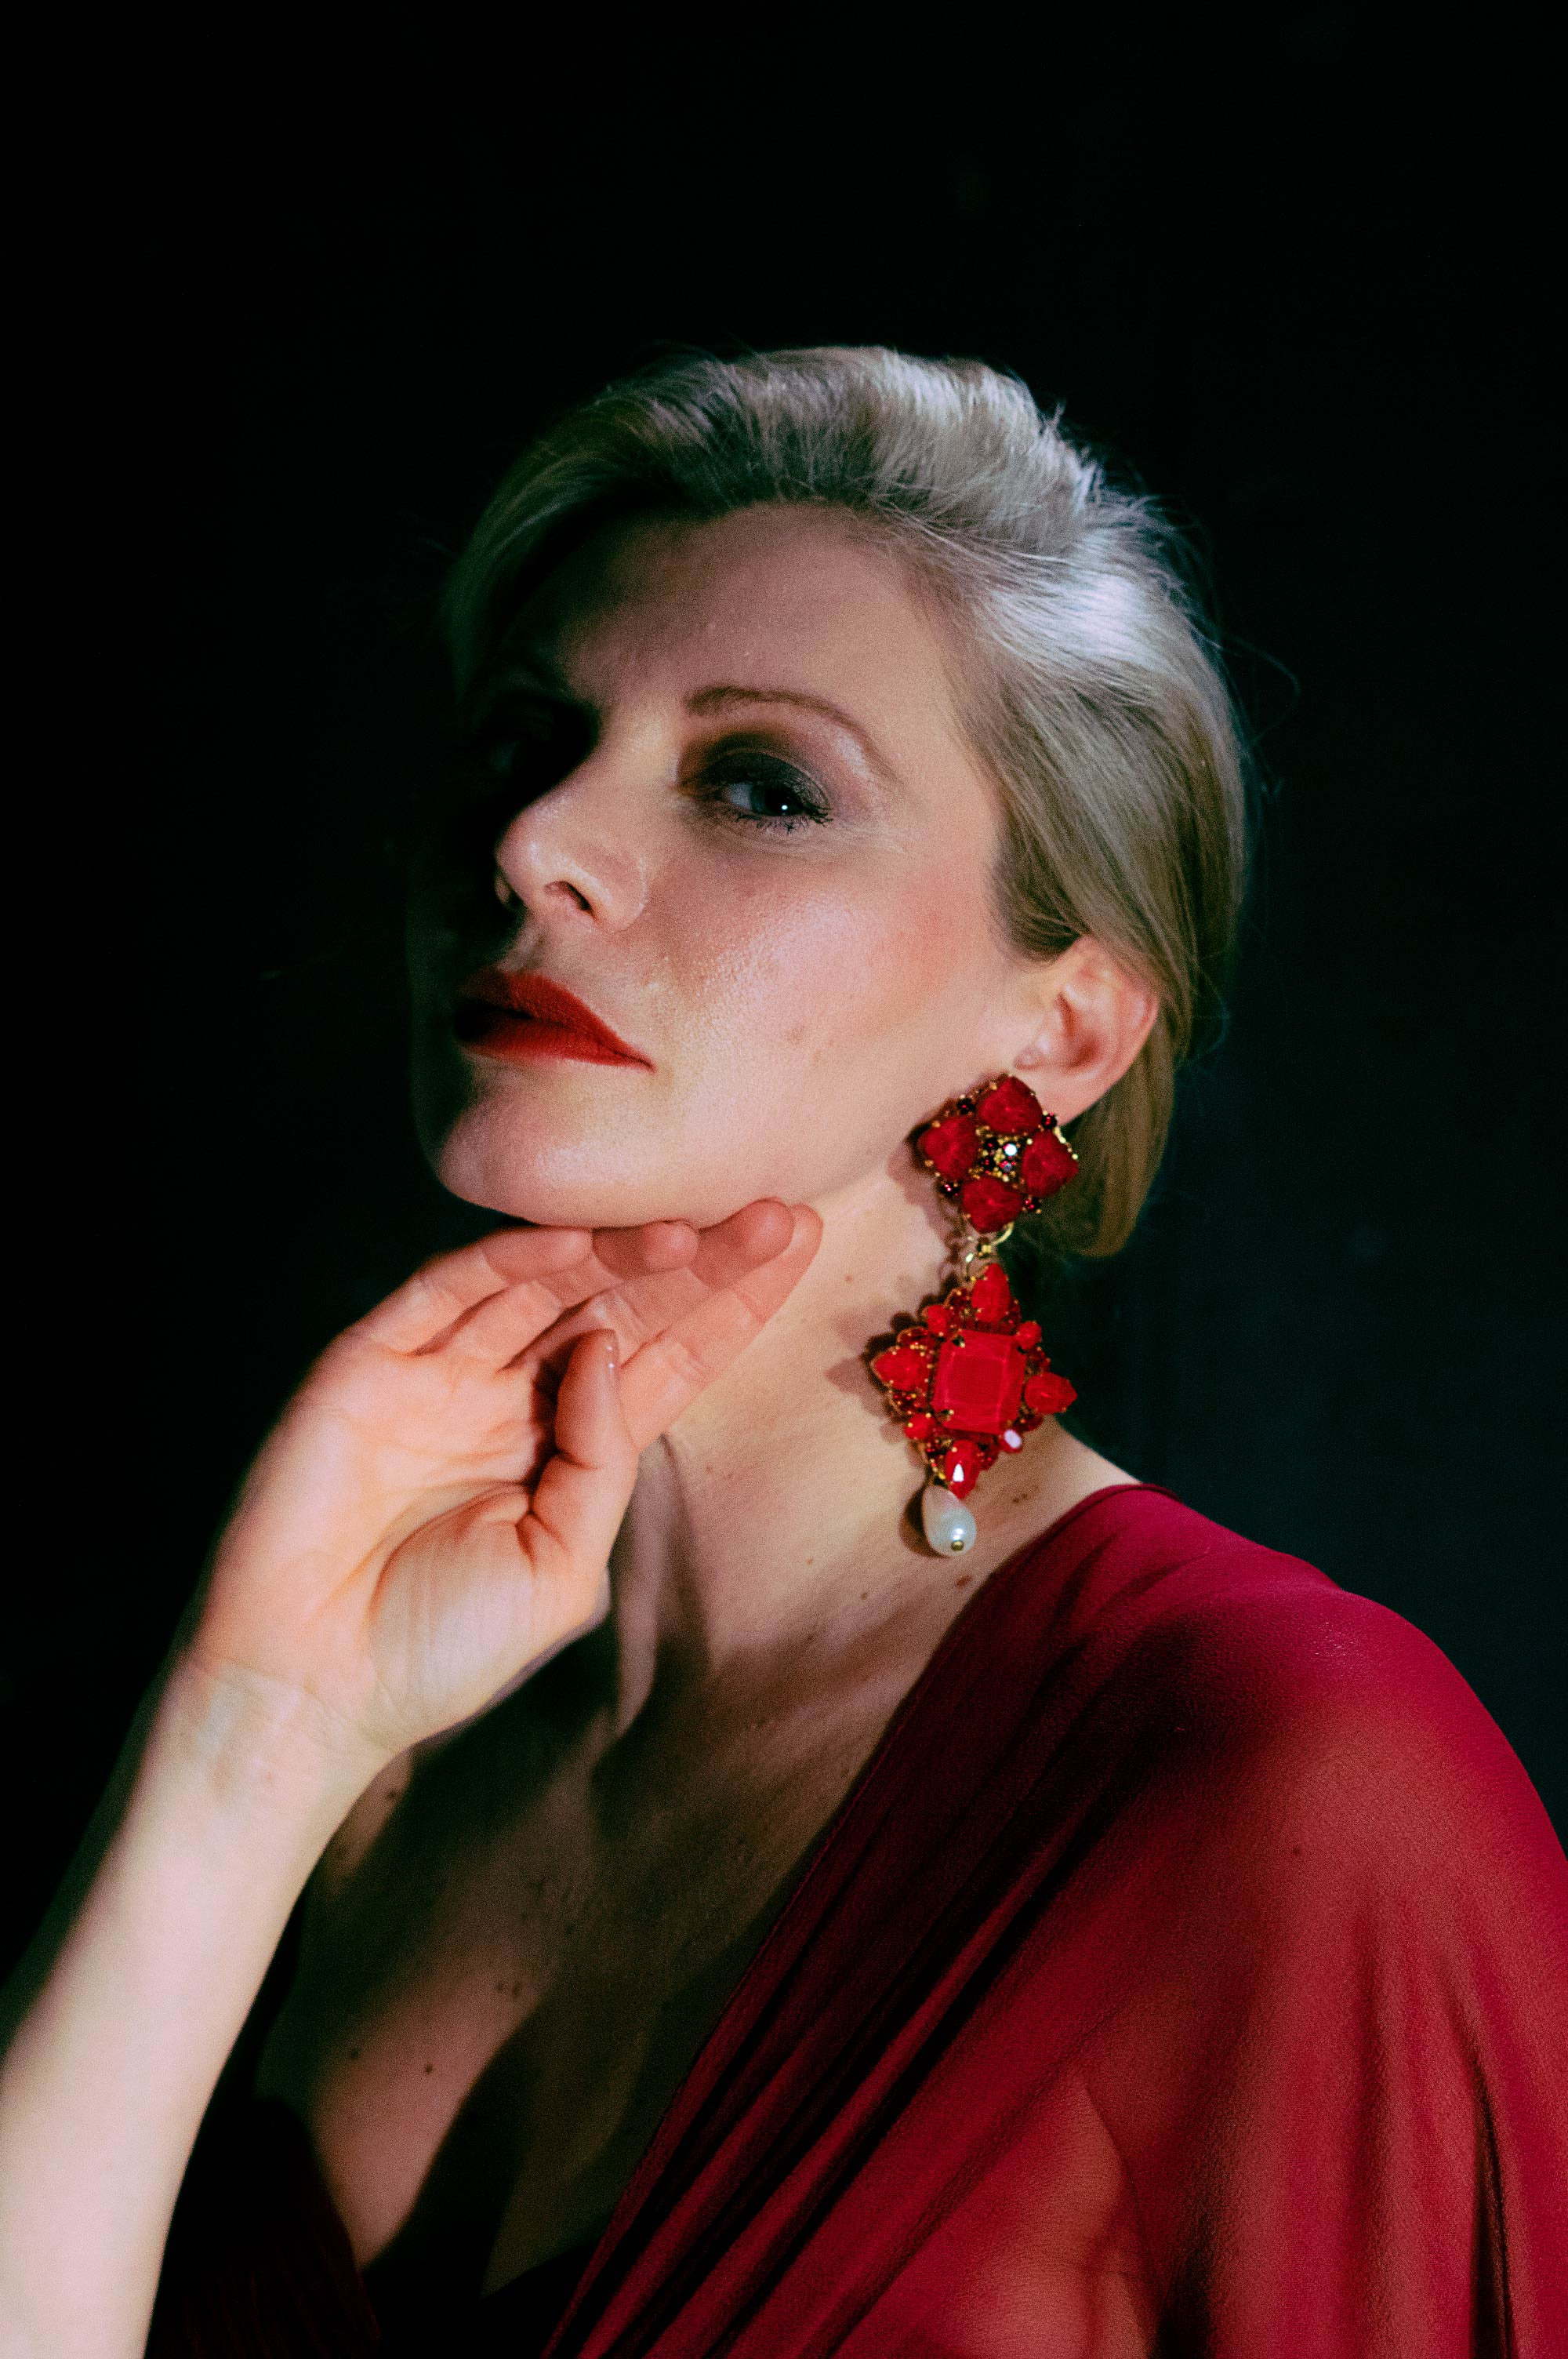 Fashion makeup. Woman in red dress poses for fashion photography.